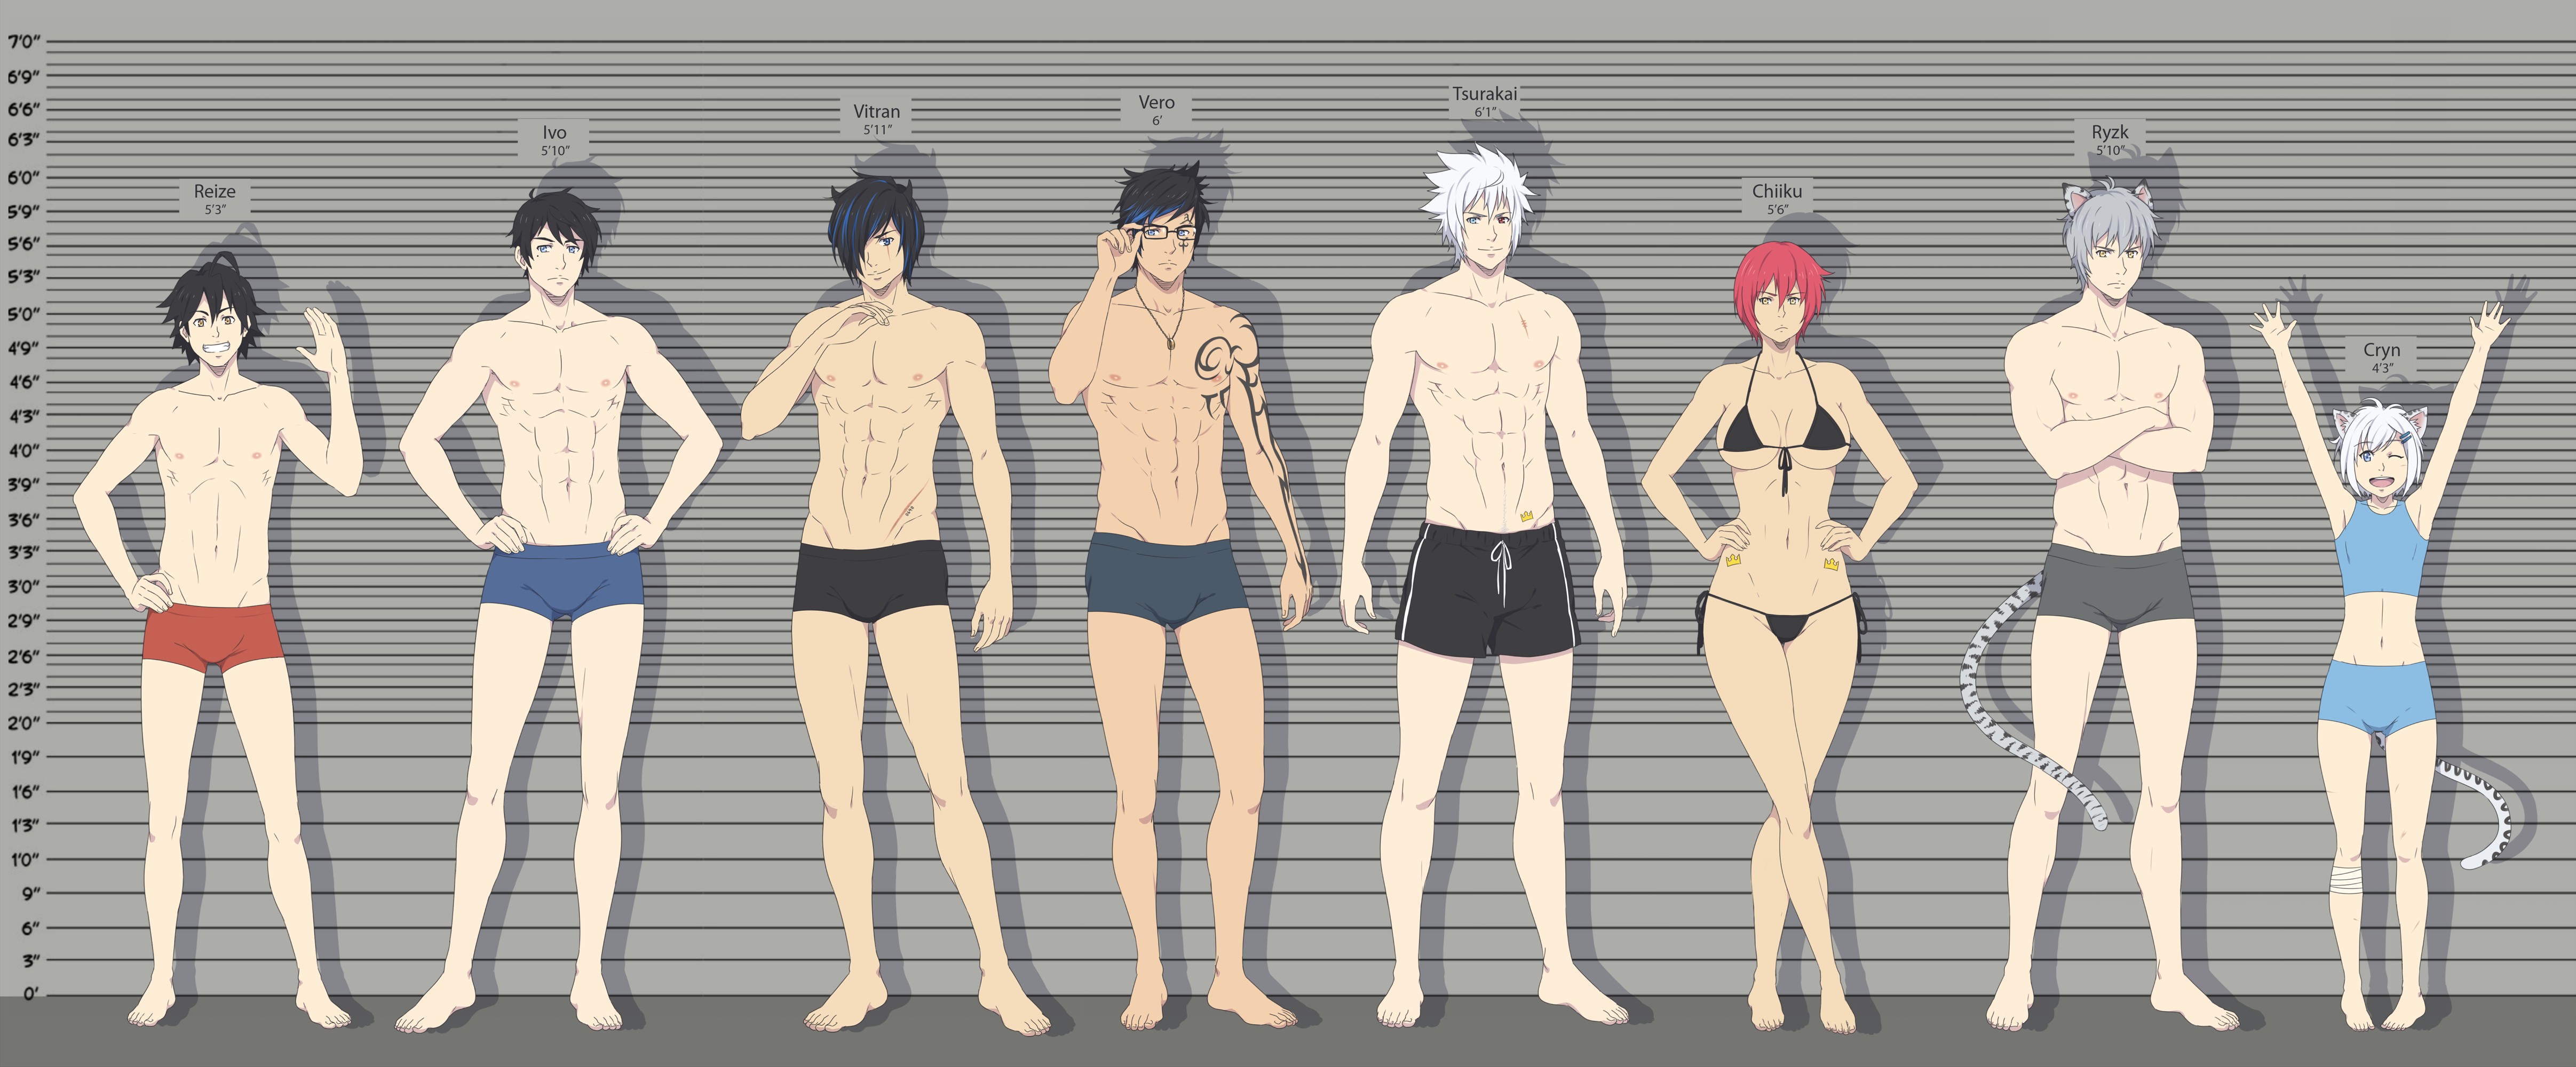 Anime Characters Over 6 Feet Tall : What s your height batch by ichan desu on deviantart